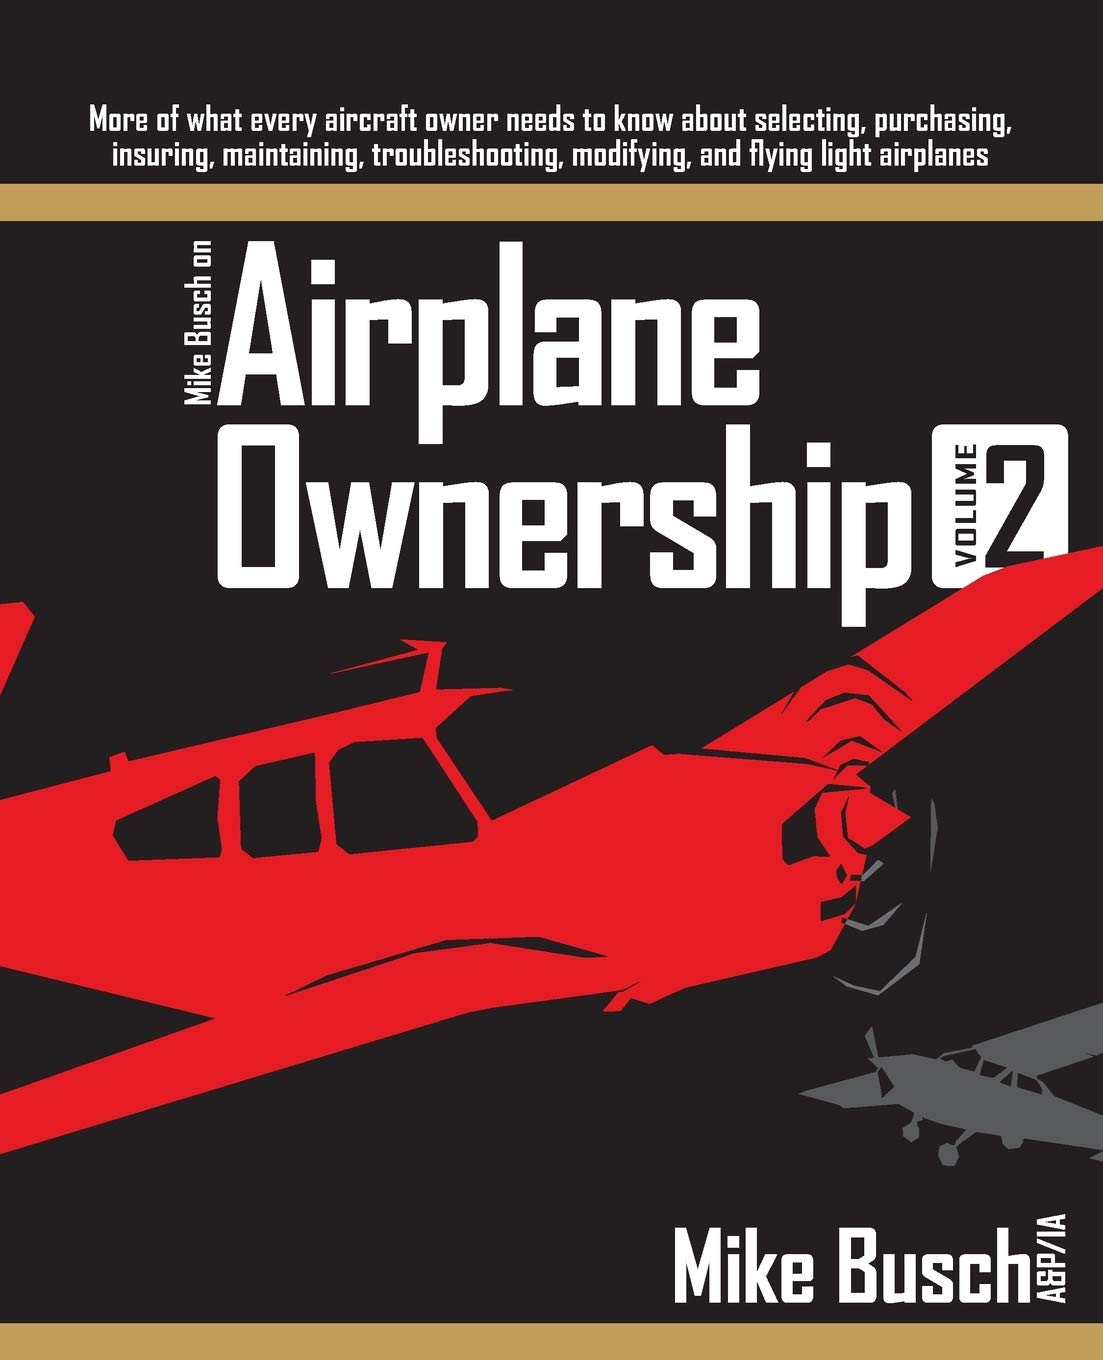 Image OfMike Busch On Airplane Ownership (Volume 2): More Of What Every Aircraft Owner Needs To Know About Selecting, Purchasing, ...